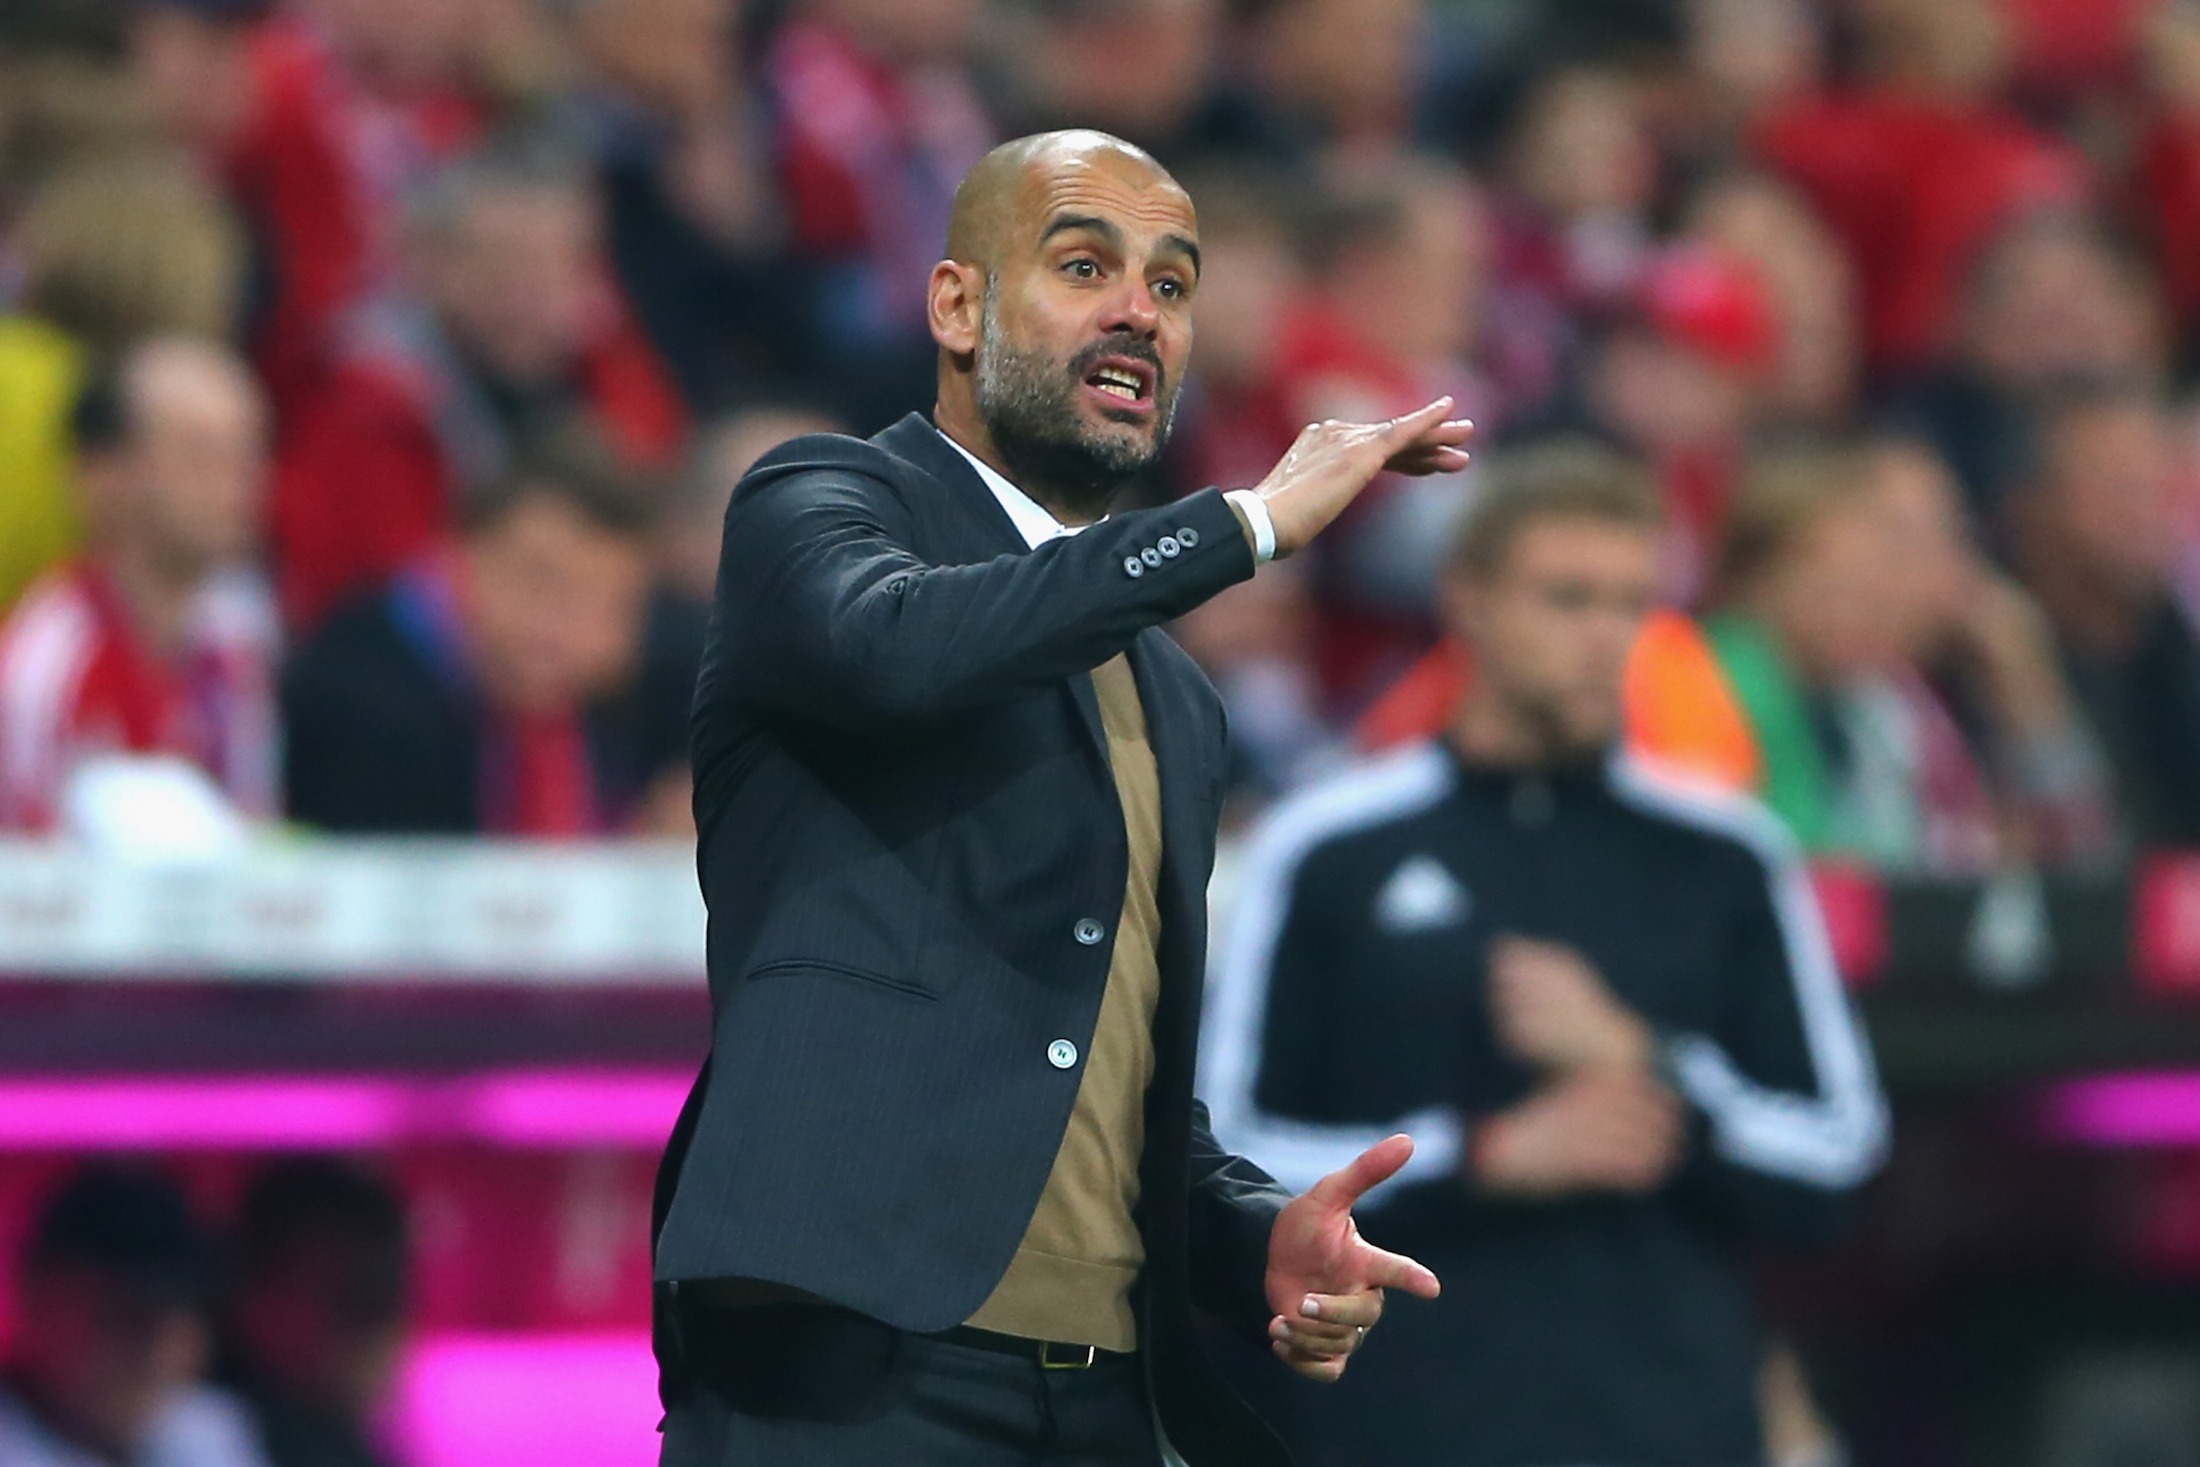 Pep Guardiola mira alla Champions League prima di andare al City